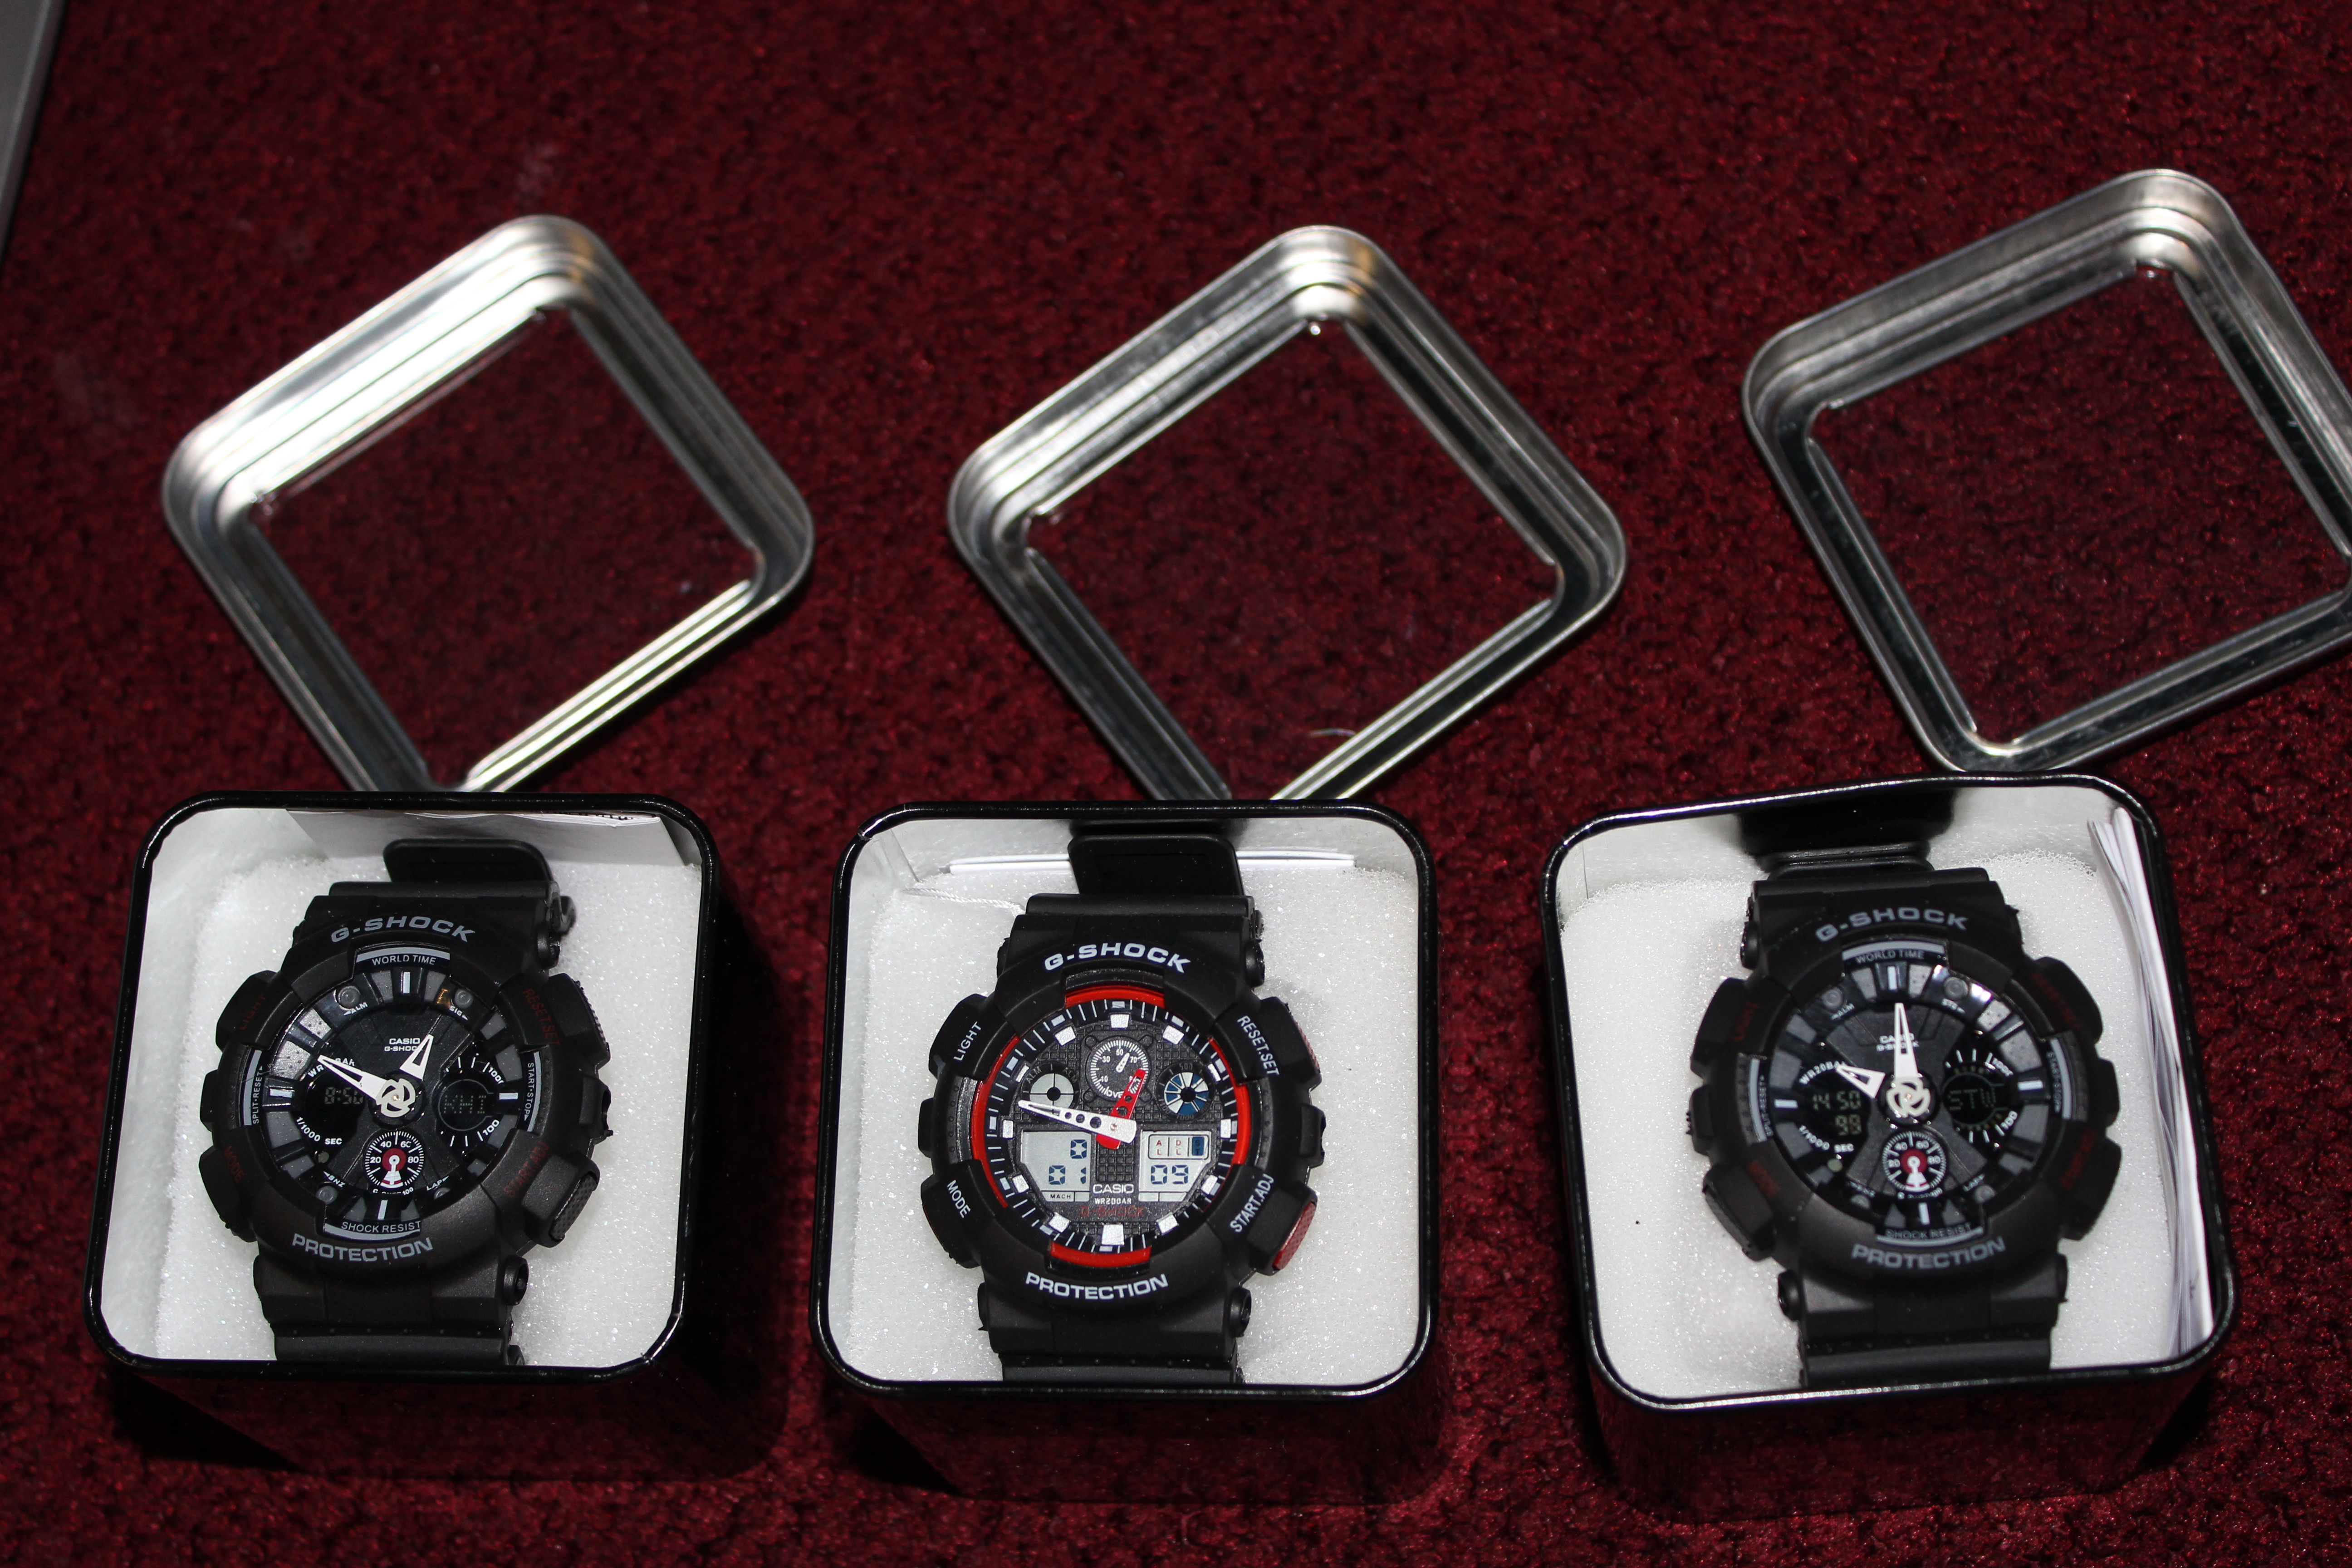 g shock protection китай инструкция